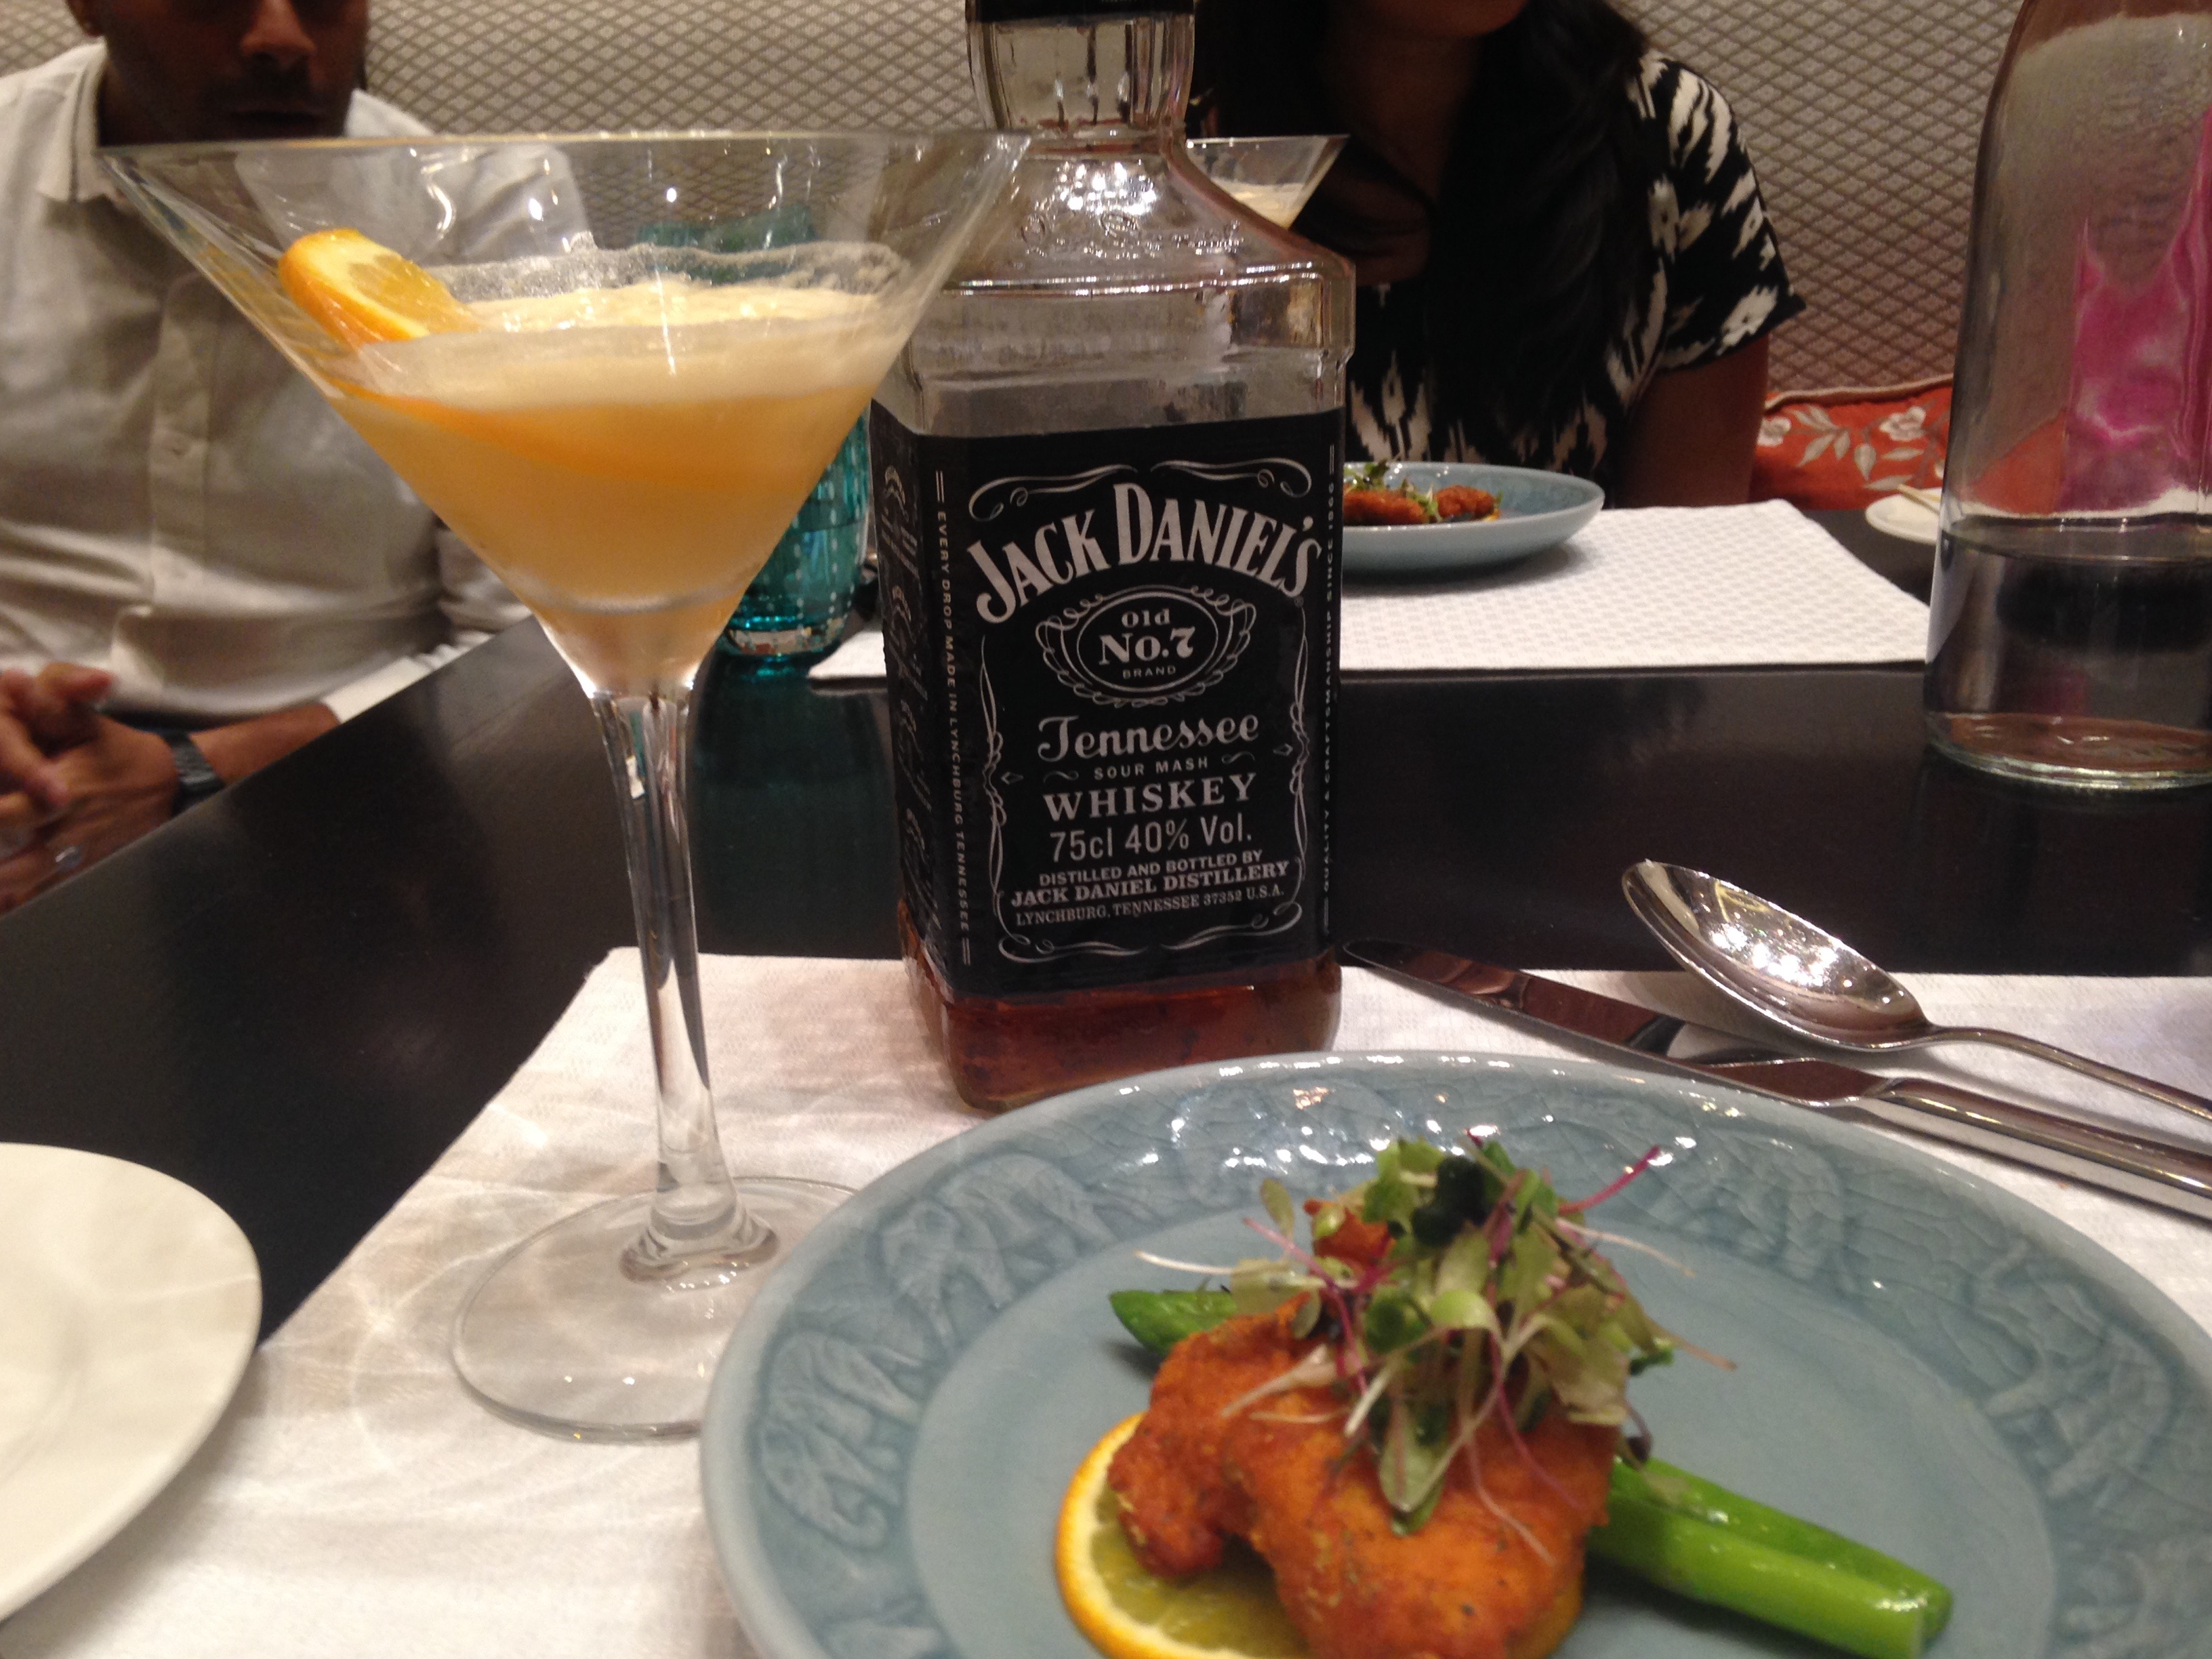 JD and Fried Fish